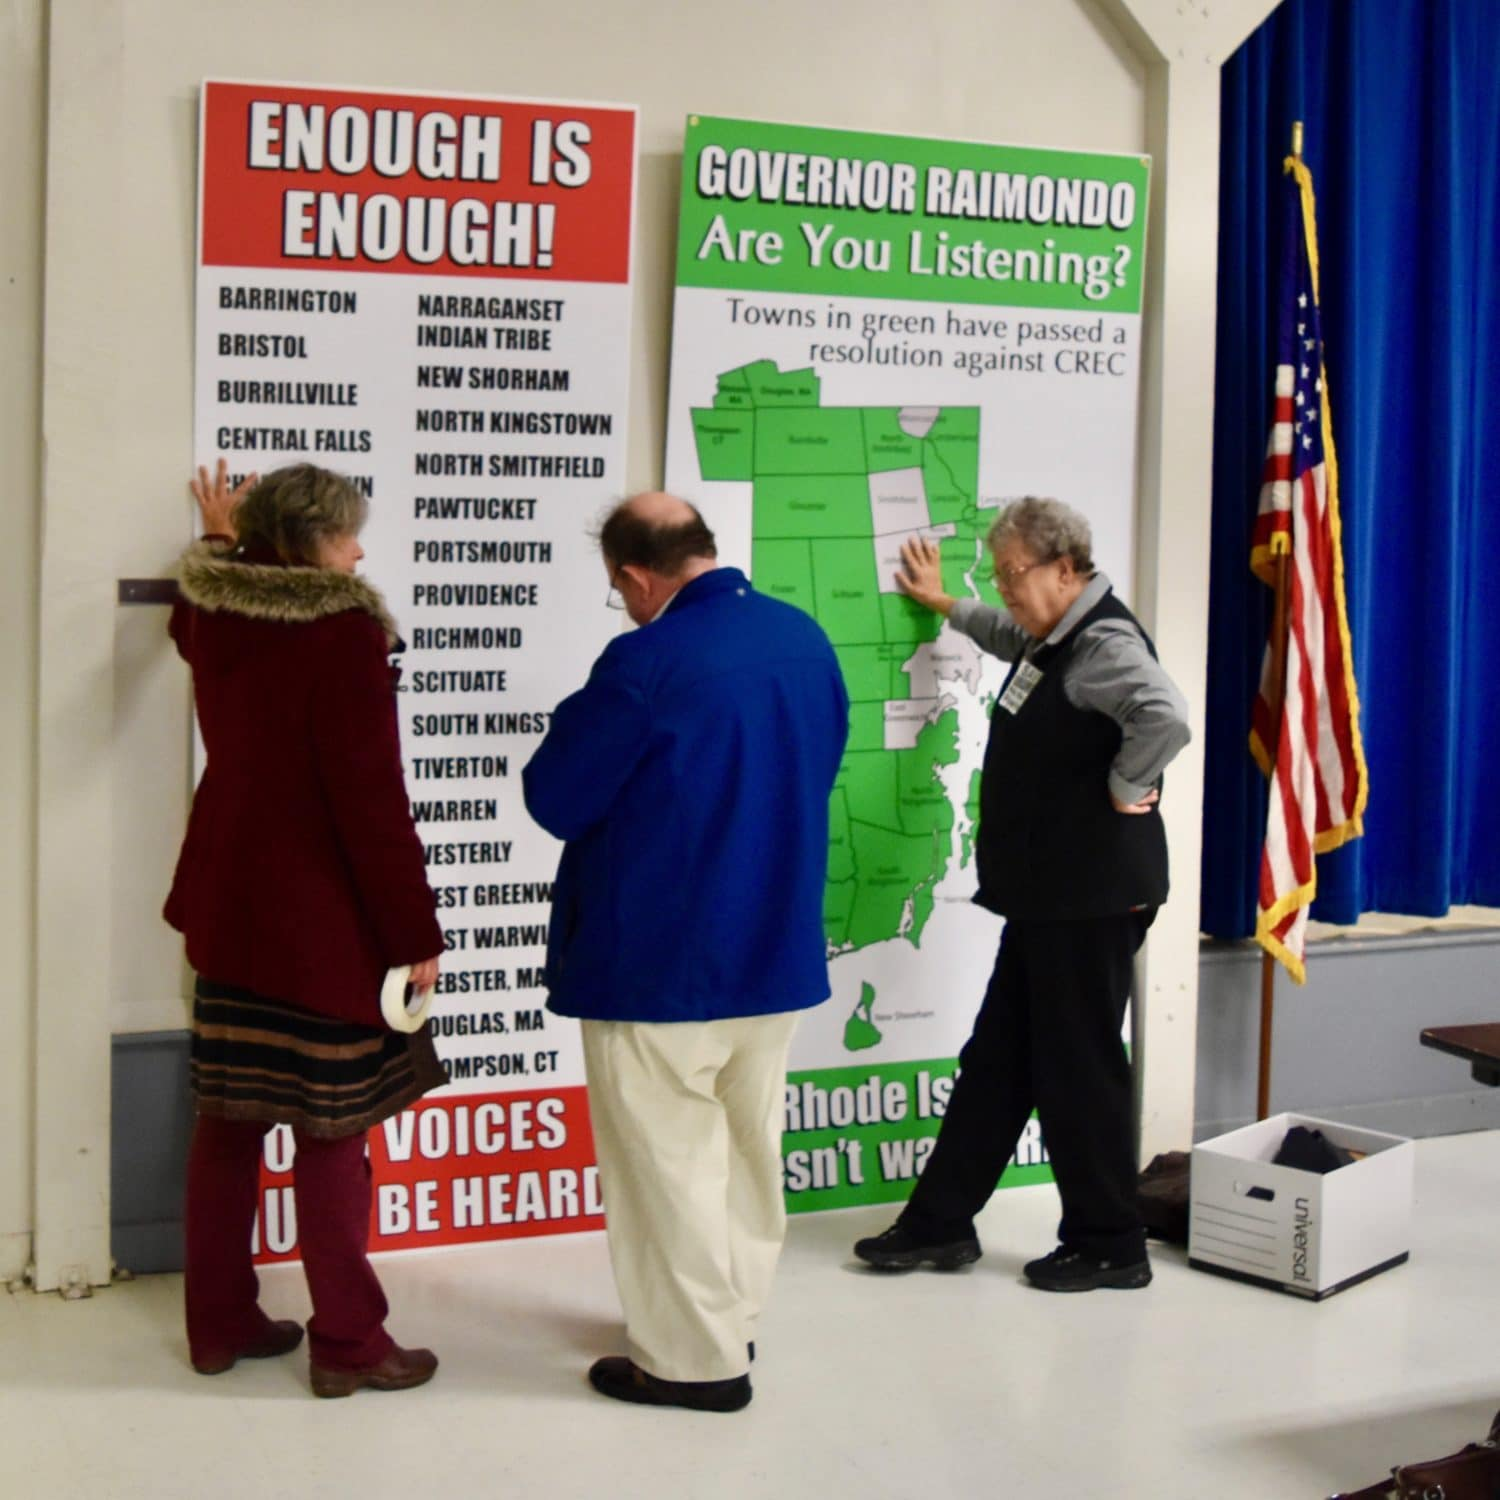 Photo for Scituate is withdrawing their opposition to Invenergy and their support for Burrillville